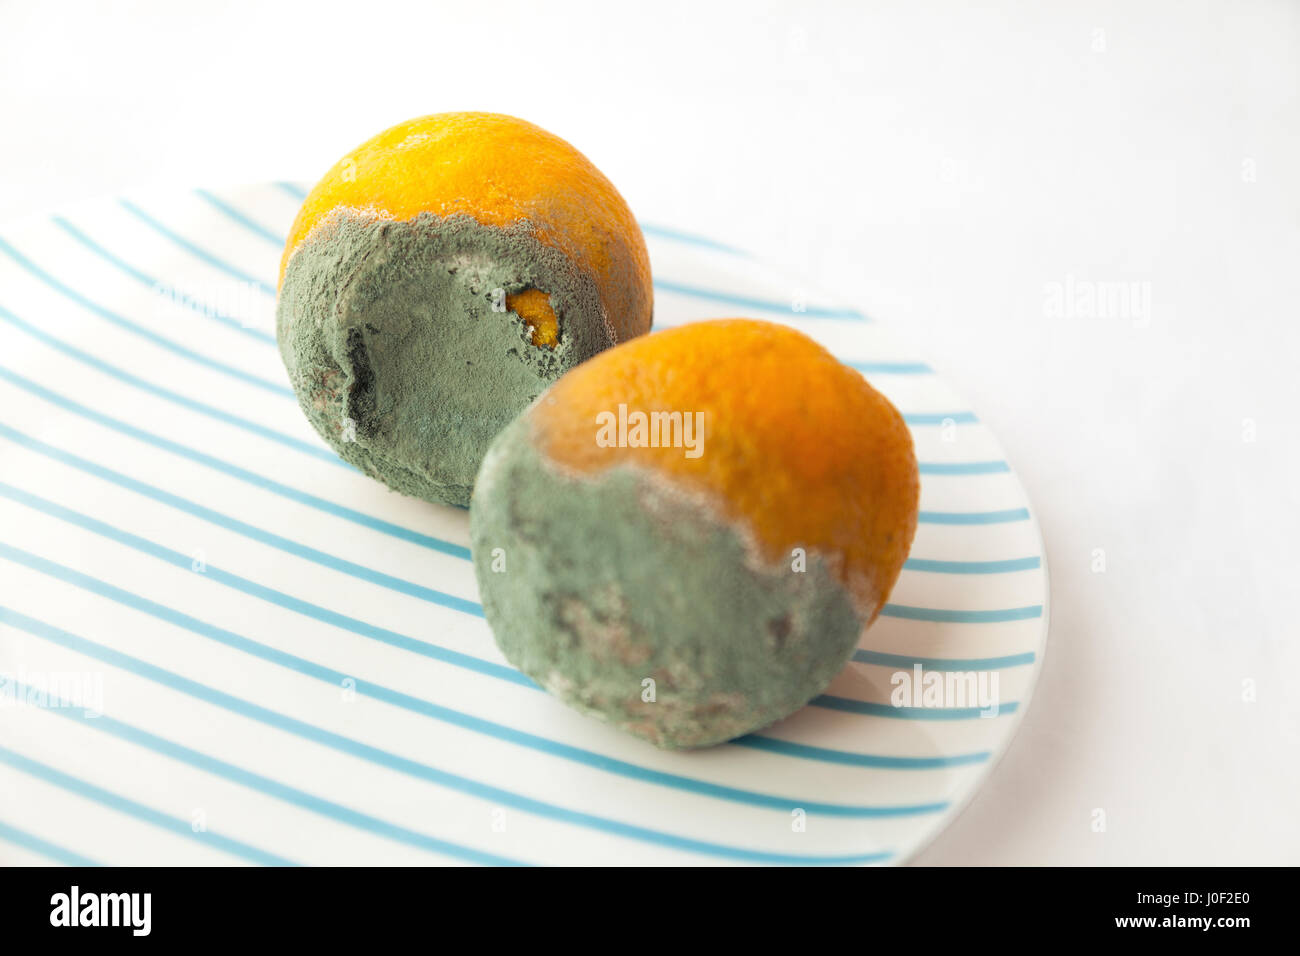 Two rotten oranges covered with blue mold. Beautiful spoiled food: citrus fruit on a plate. Shallow focus - Stock Image